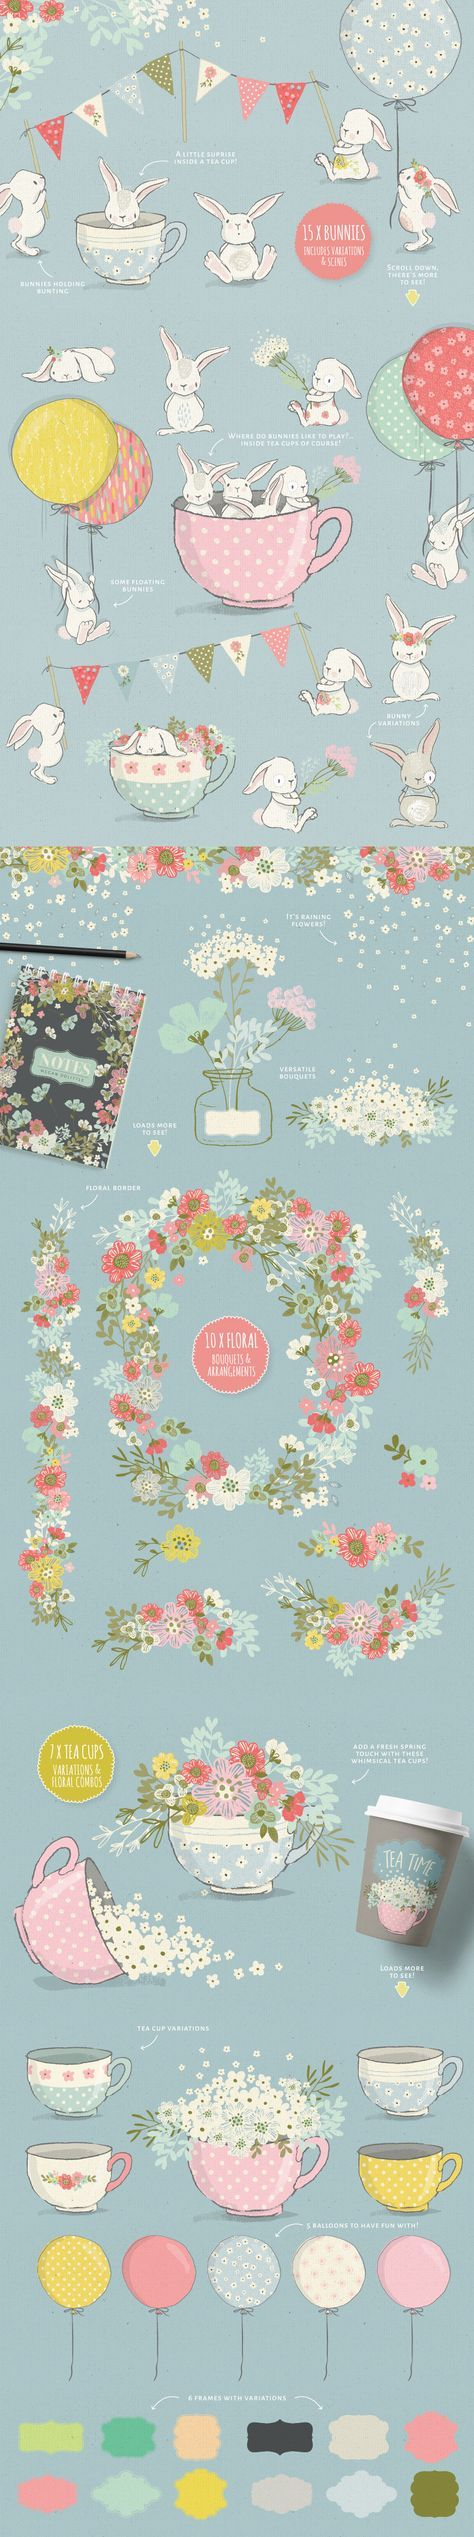 The best images about graphics and prints on pinterest